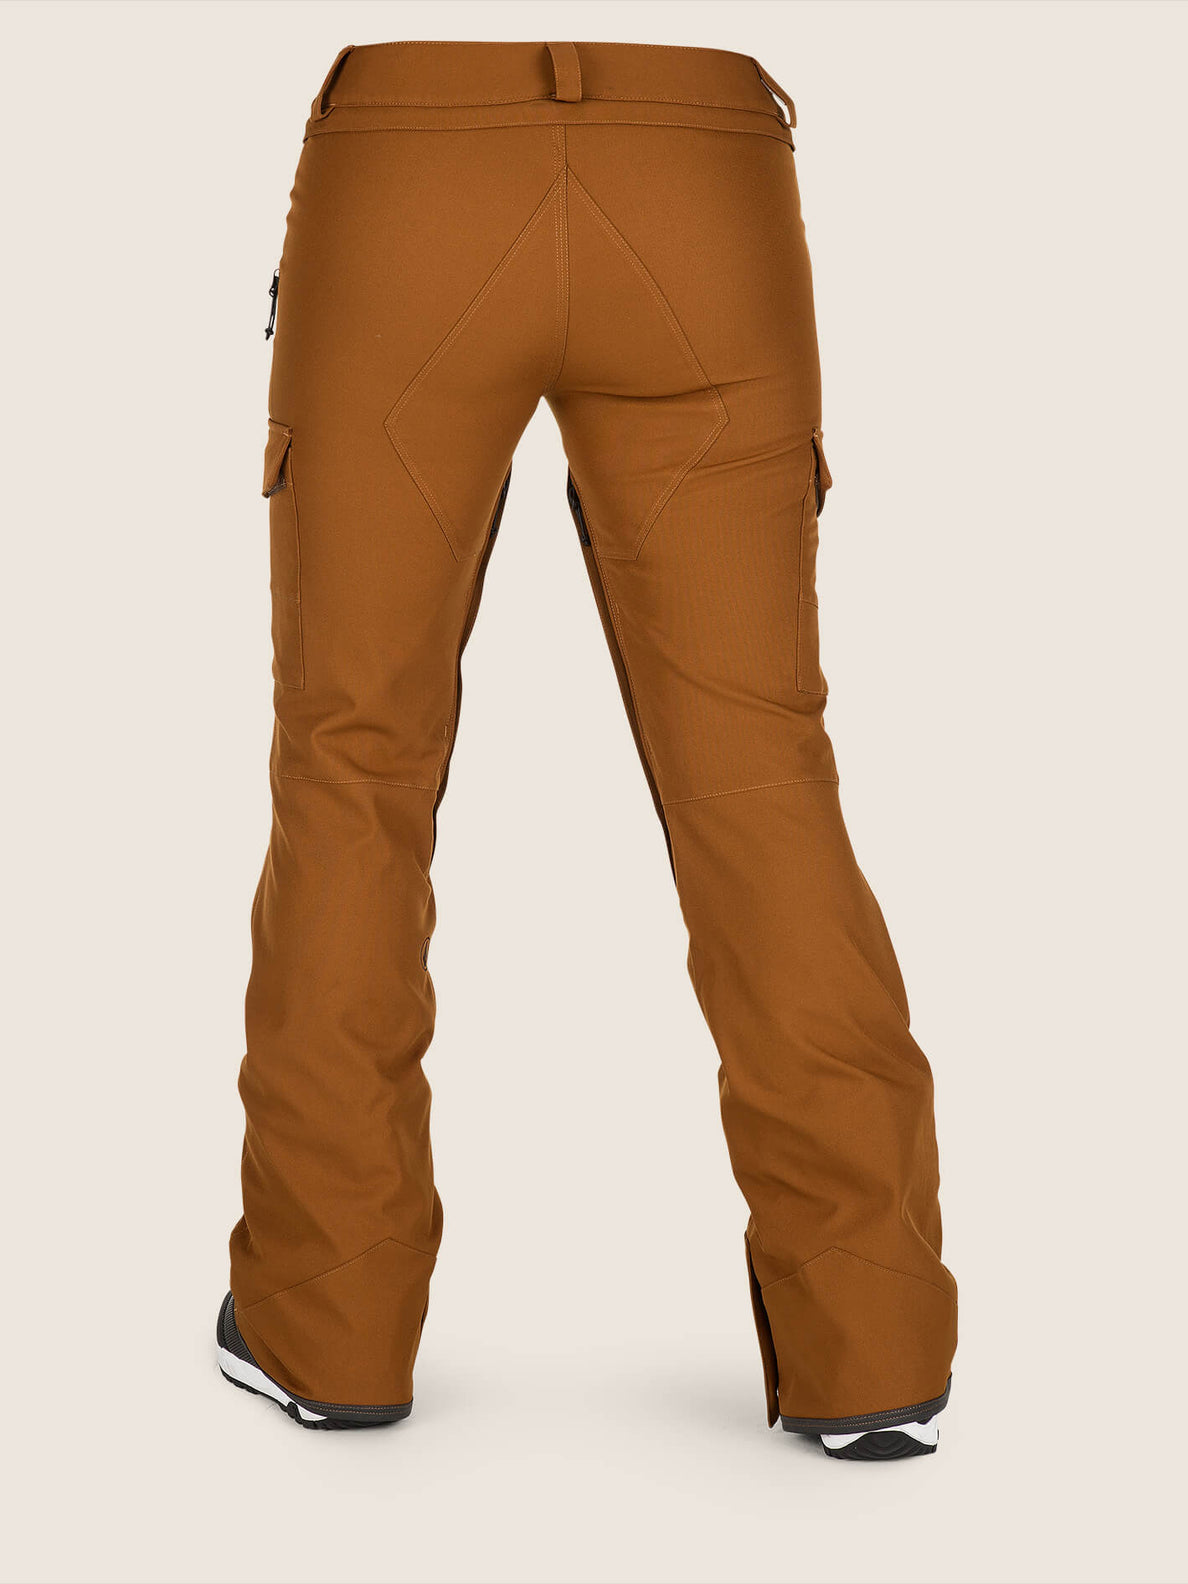 Mira Pant In Copper, Back View